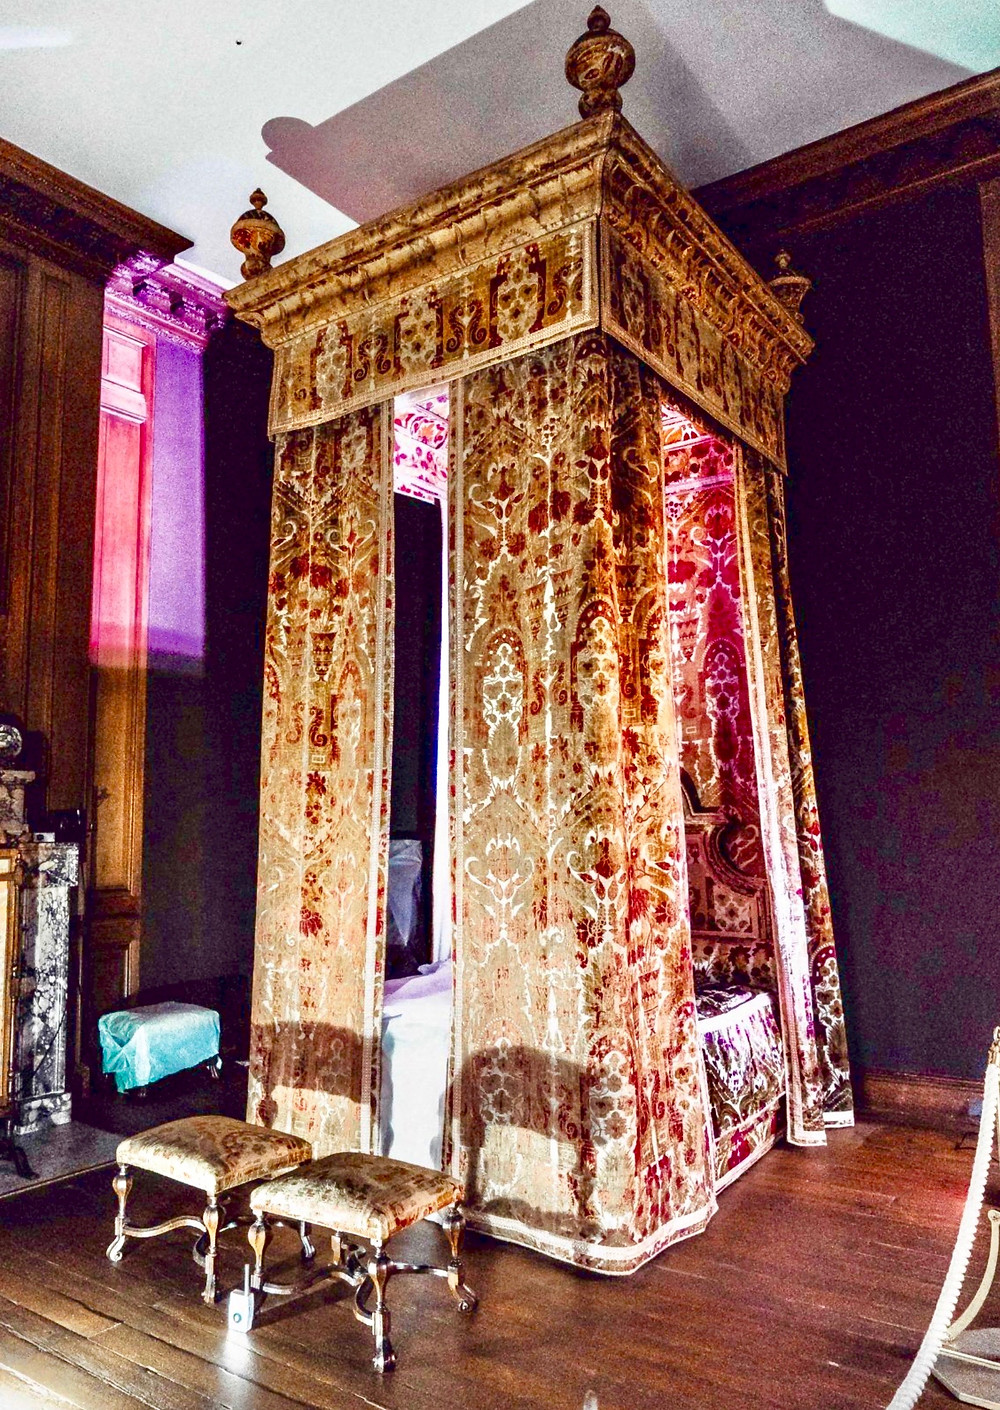 Queen Anne's 18th century bed